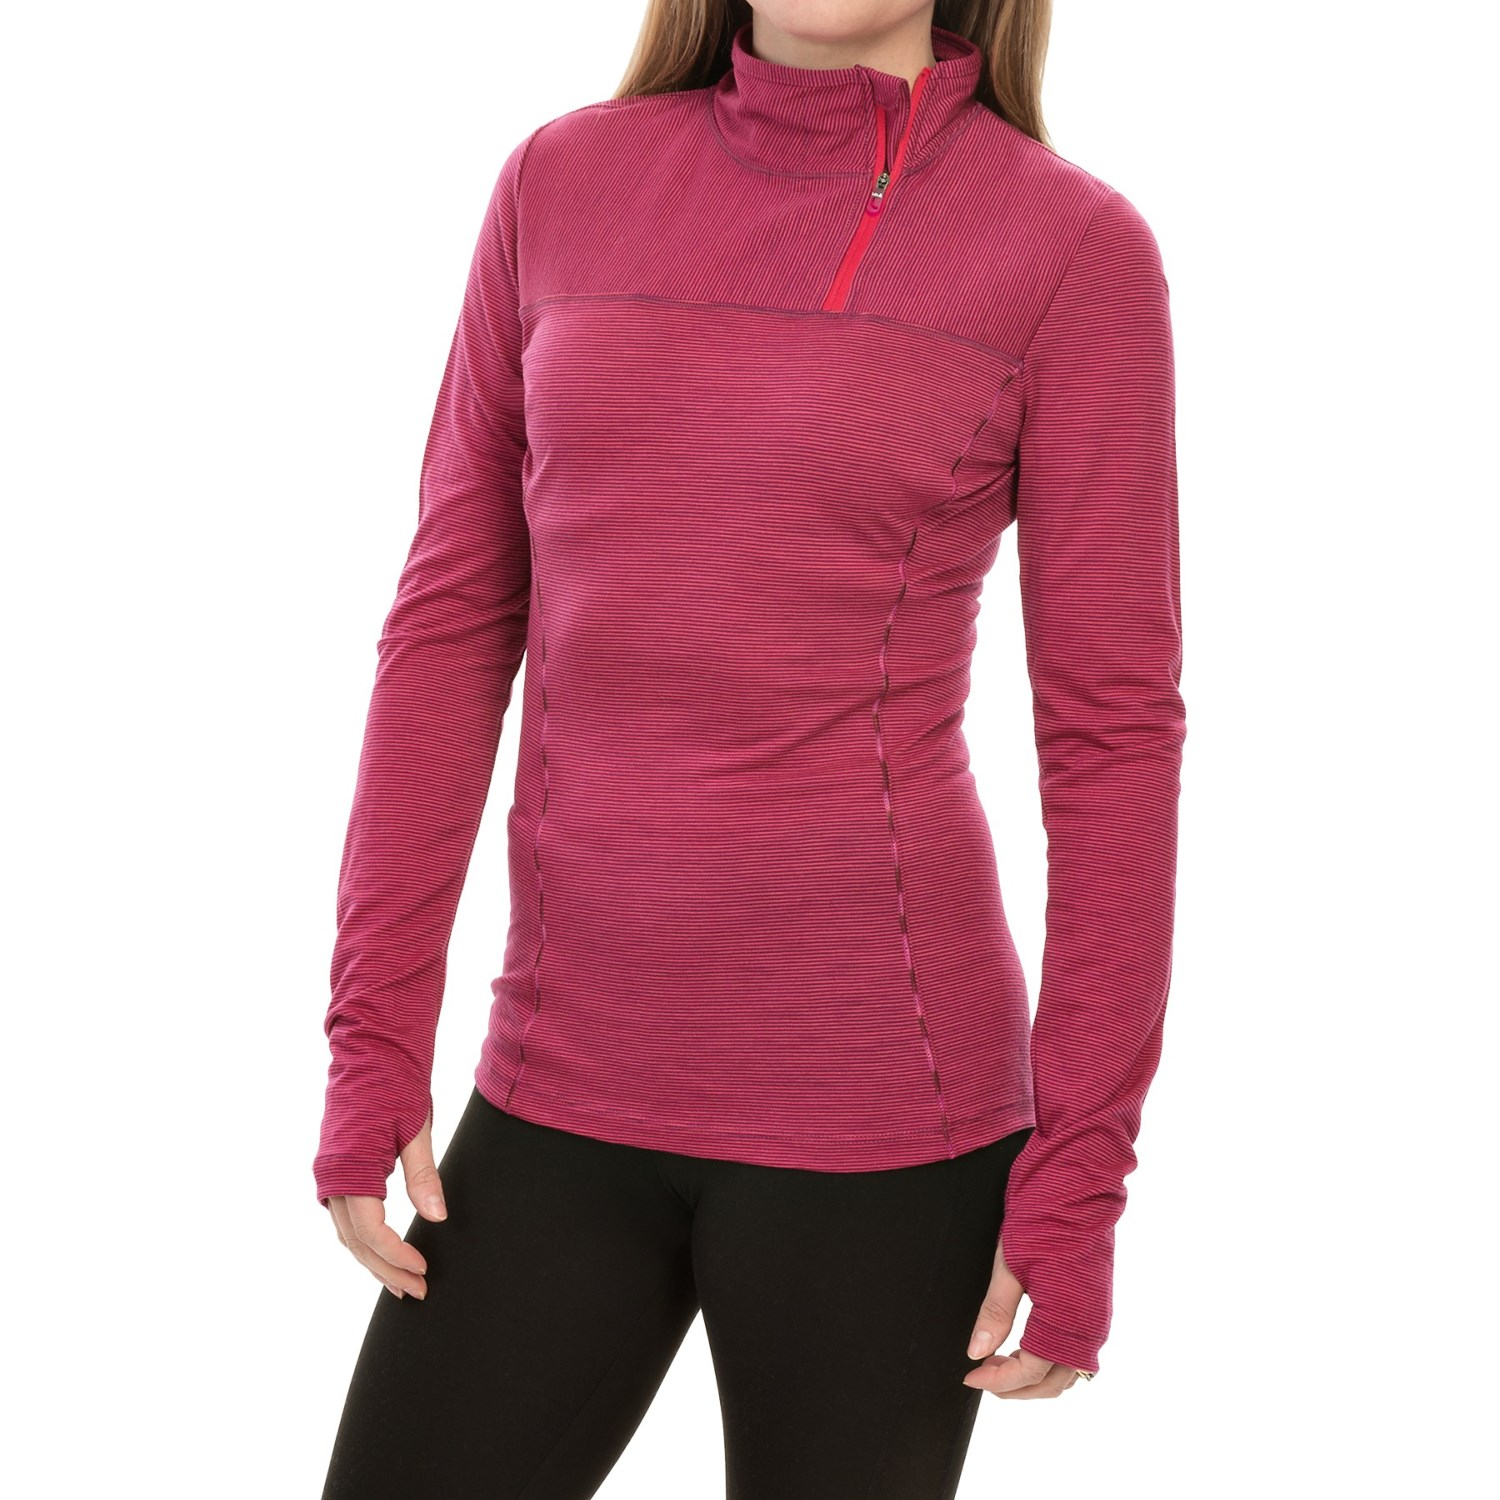 Lole delight merino wool shirt for women save 50 for Merino wool shirt womens